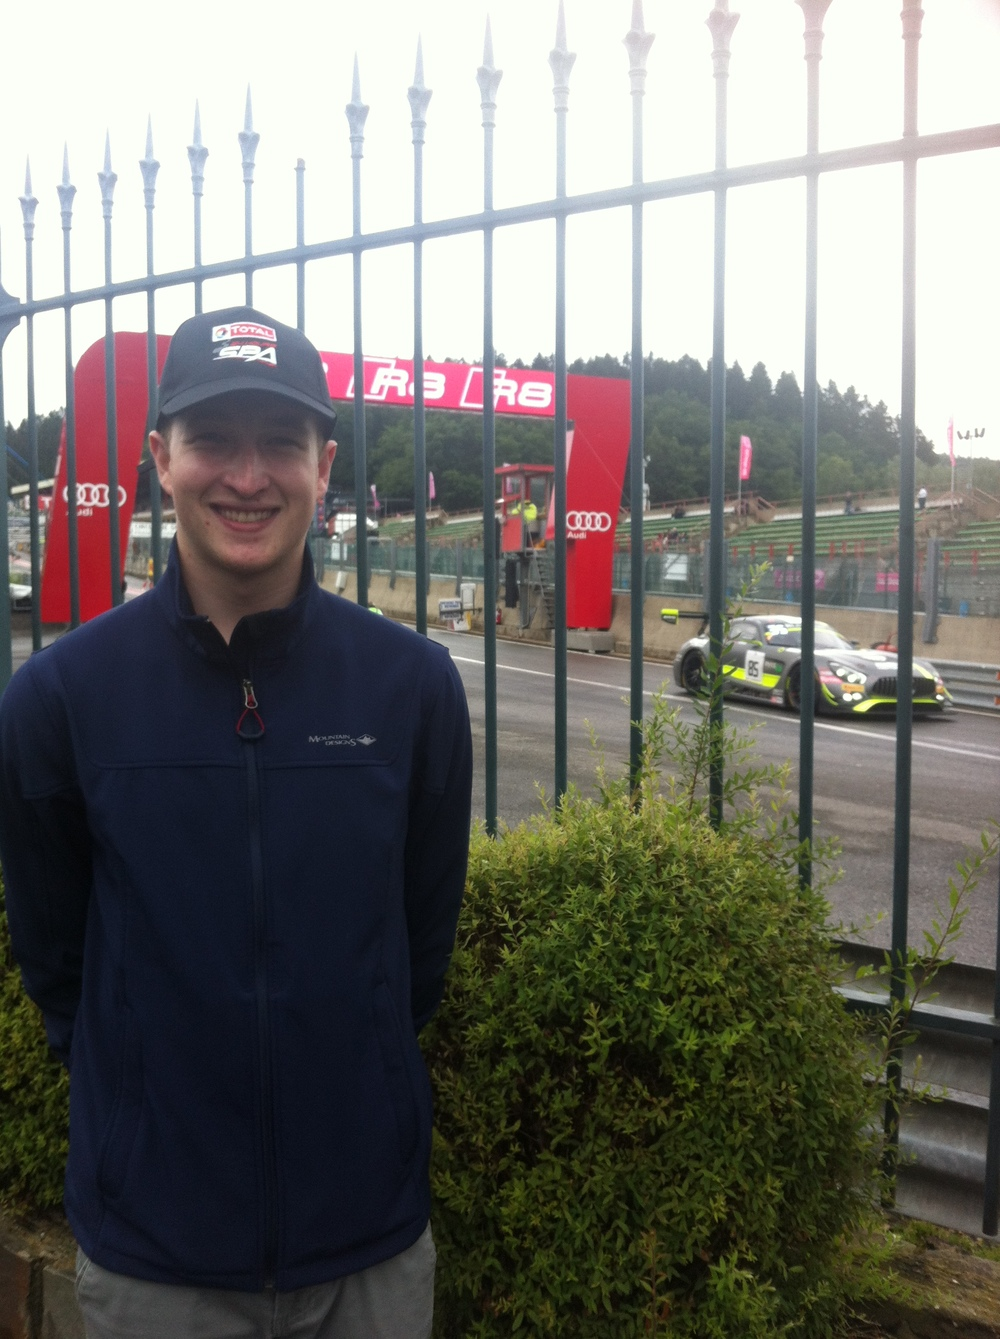 Conor at Spa Francochamps Motor Racing Circuit in the main Paddock as Le Mans style cars leave the pits for Eau Rouge & Kemmel Straight.